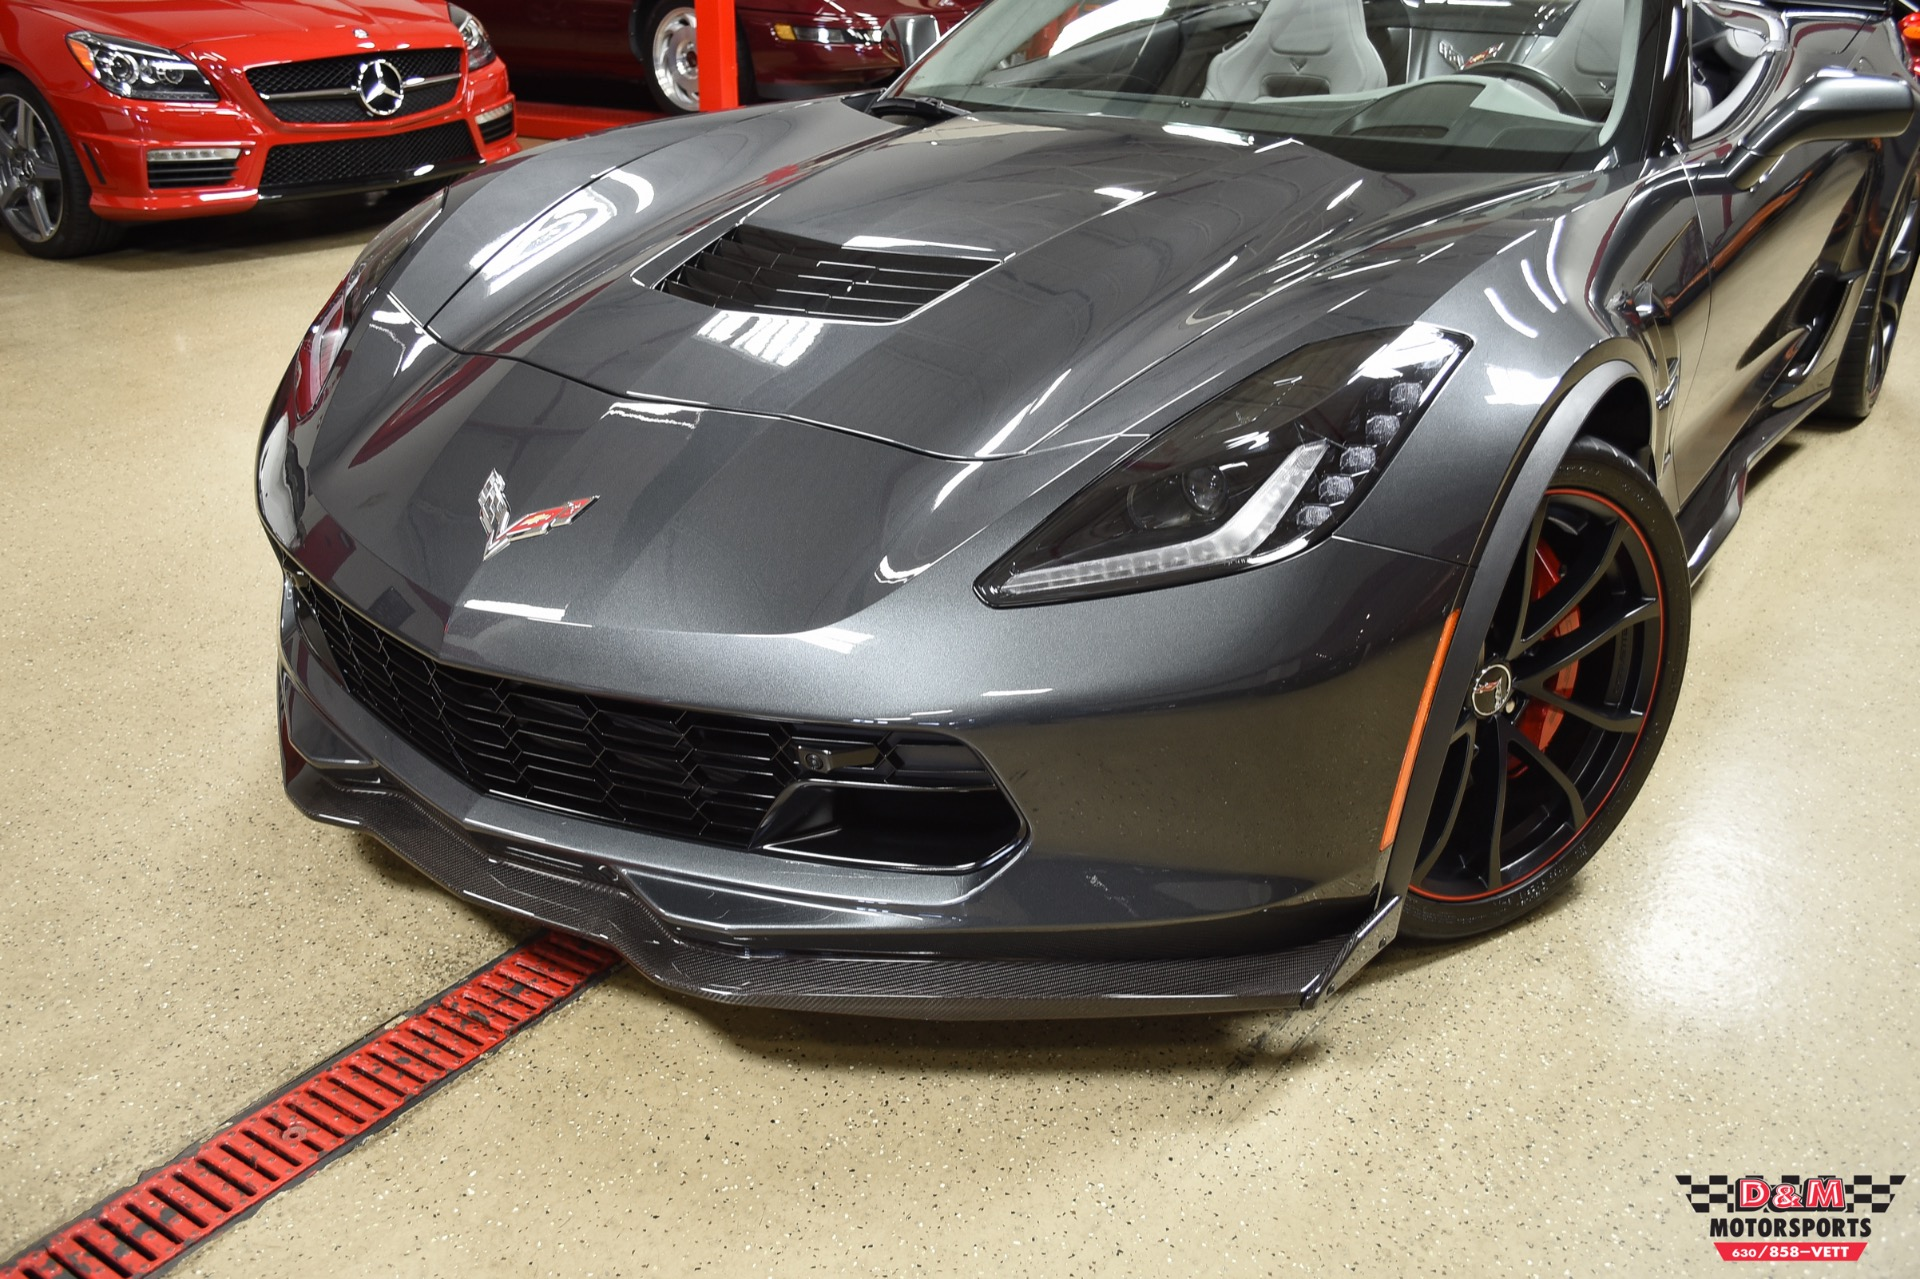 Used 2017 Chevrolet Corvette Grand Sport Convertible | Glen Ellyn, IL